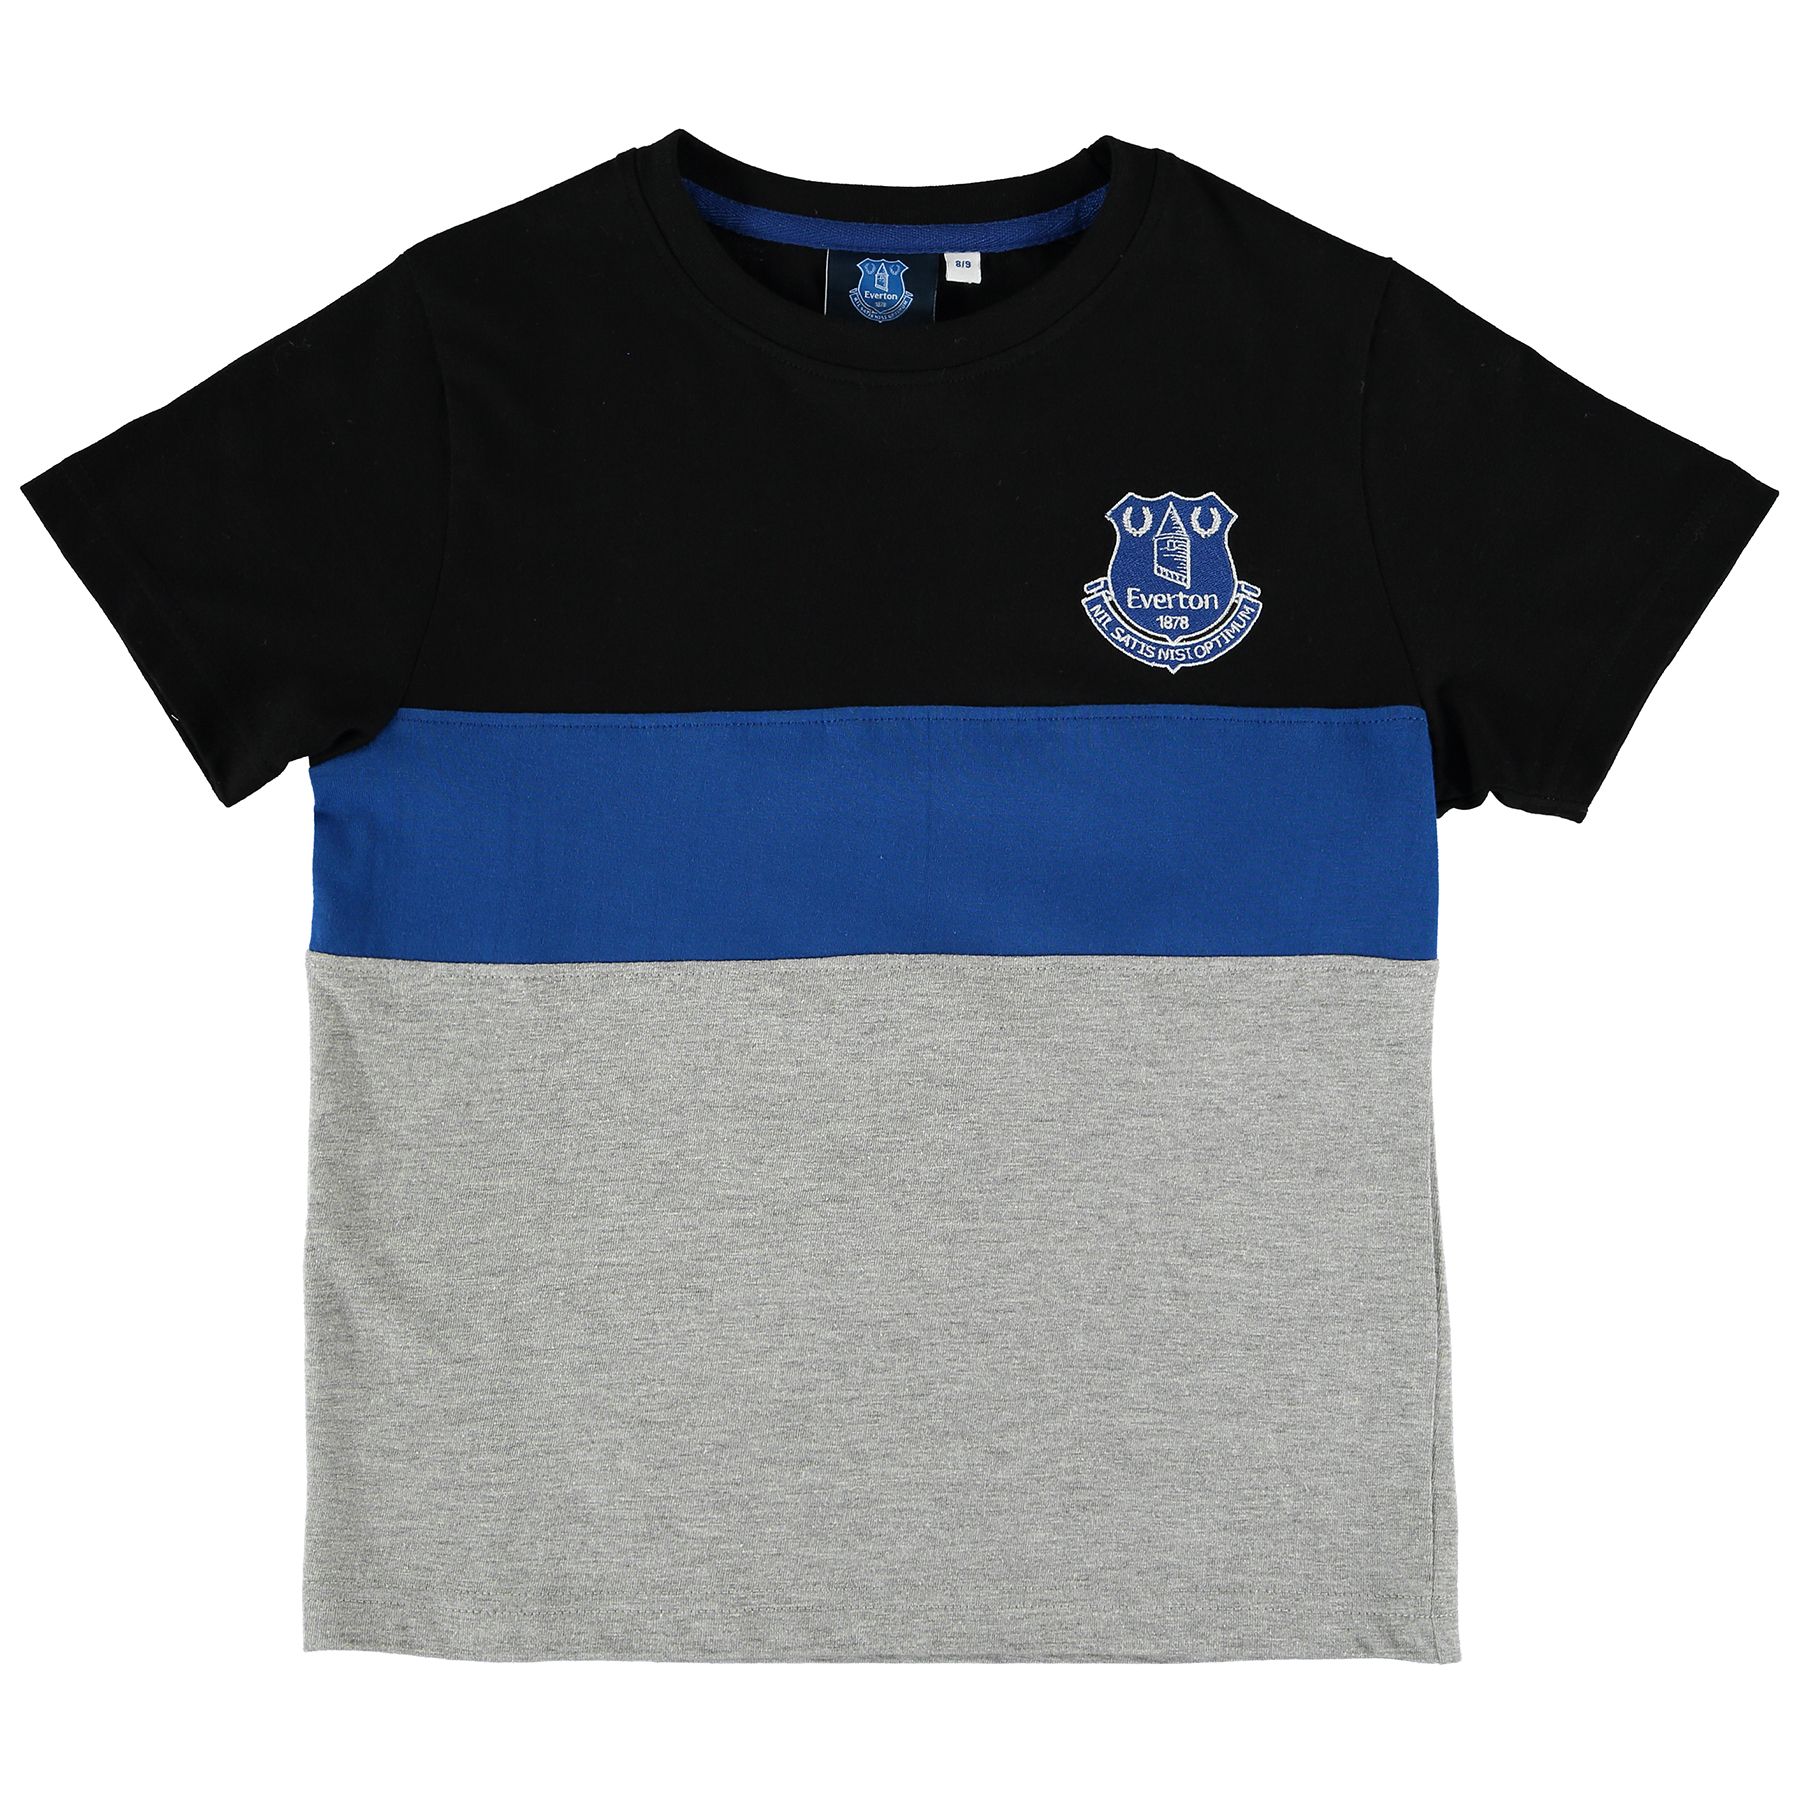 Everton Essentials Block T-Shirt - Grey Marl/Black/Royal - Junior